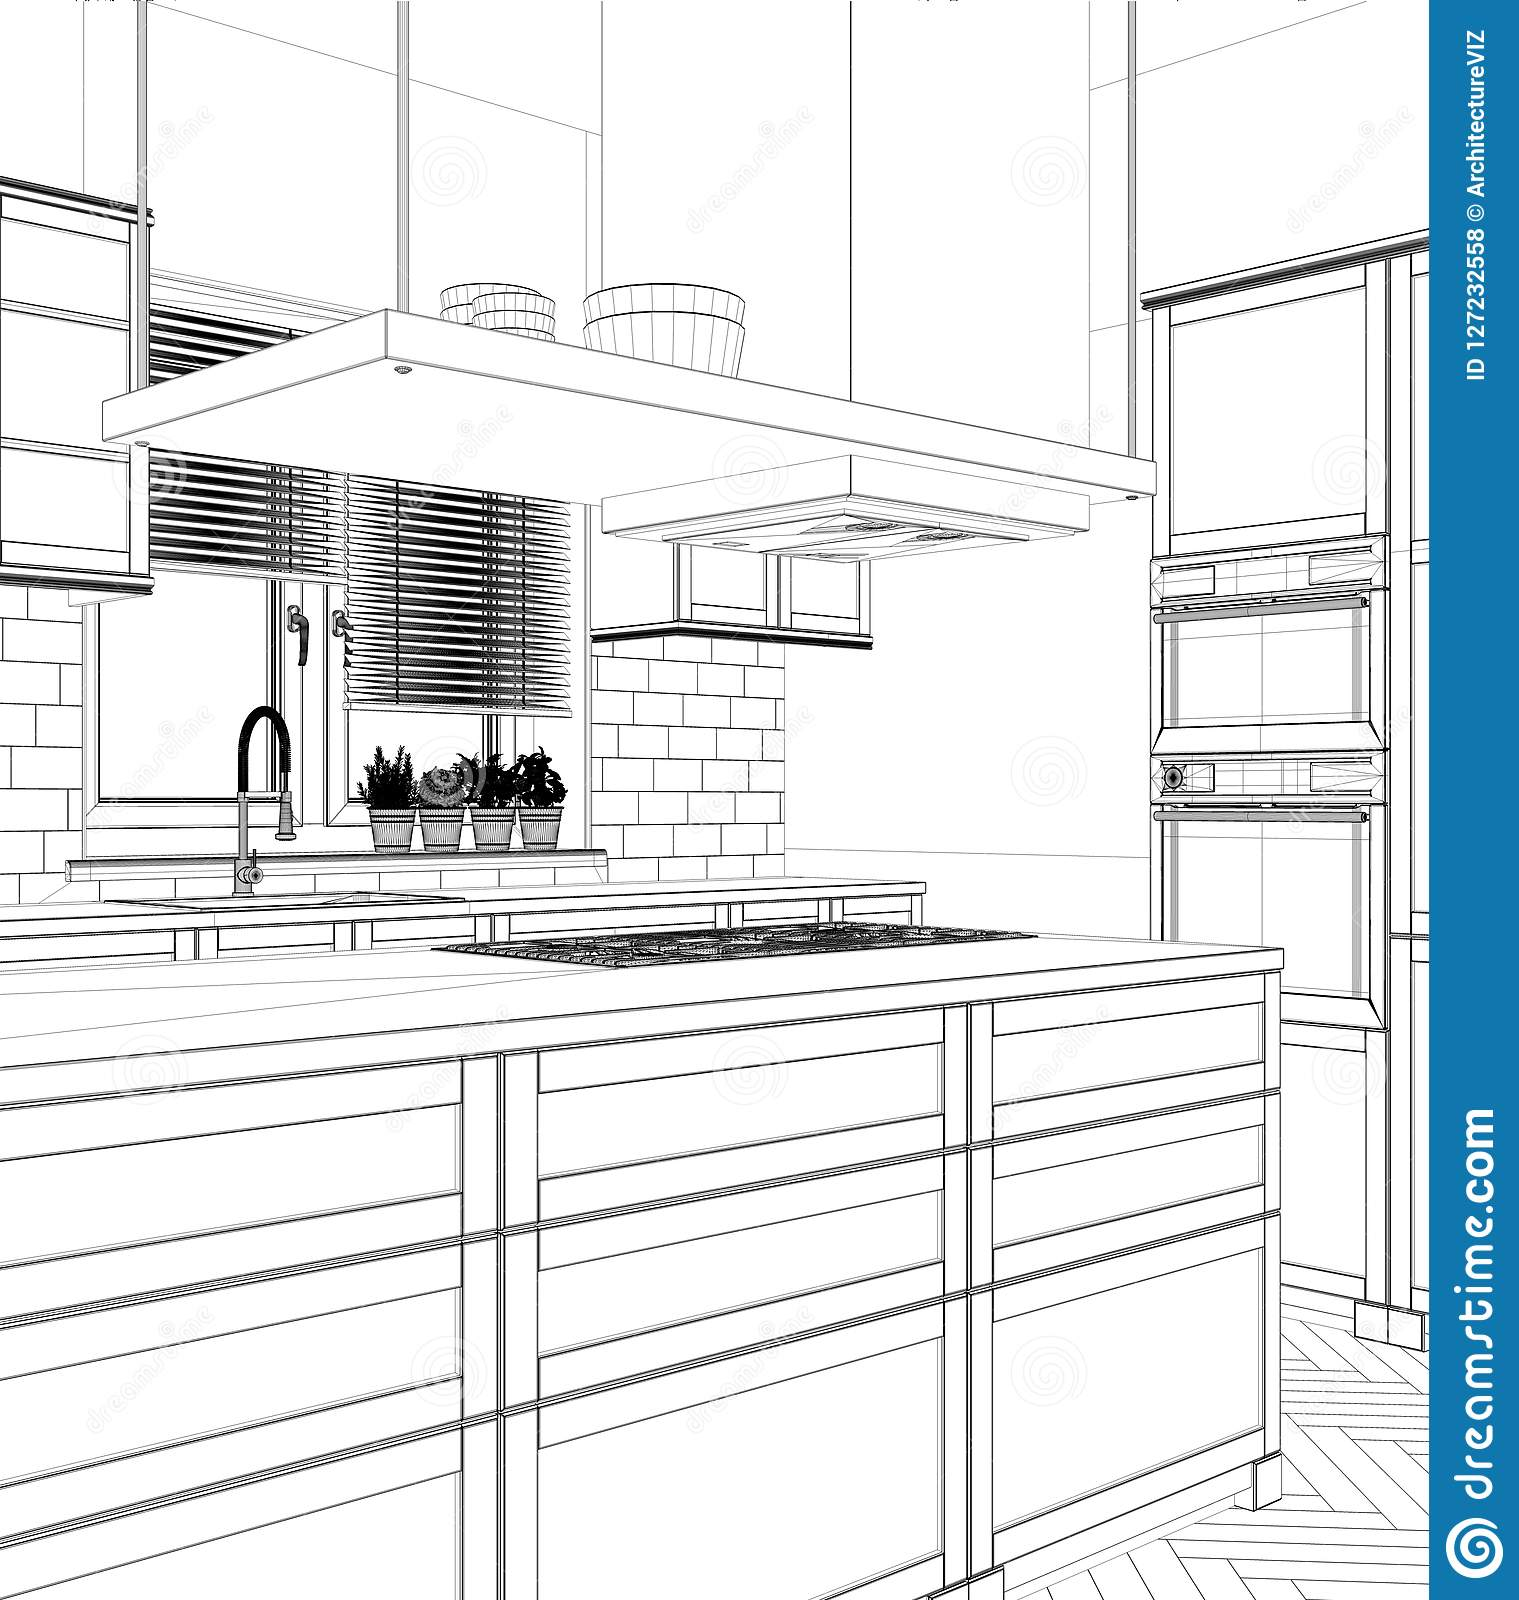 modern architecture blueprints residential interior design project black and white ink sketch architecture blueprint showing modern kitchen with design project black and white ink sketch architecture